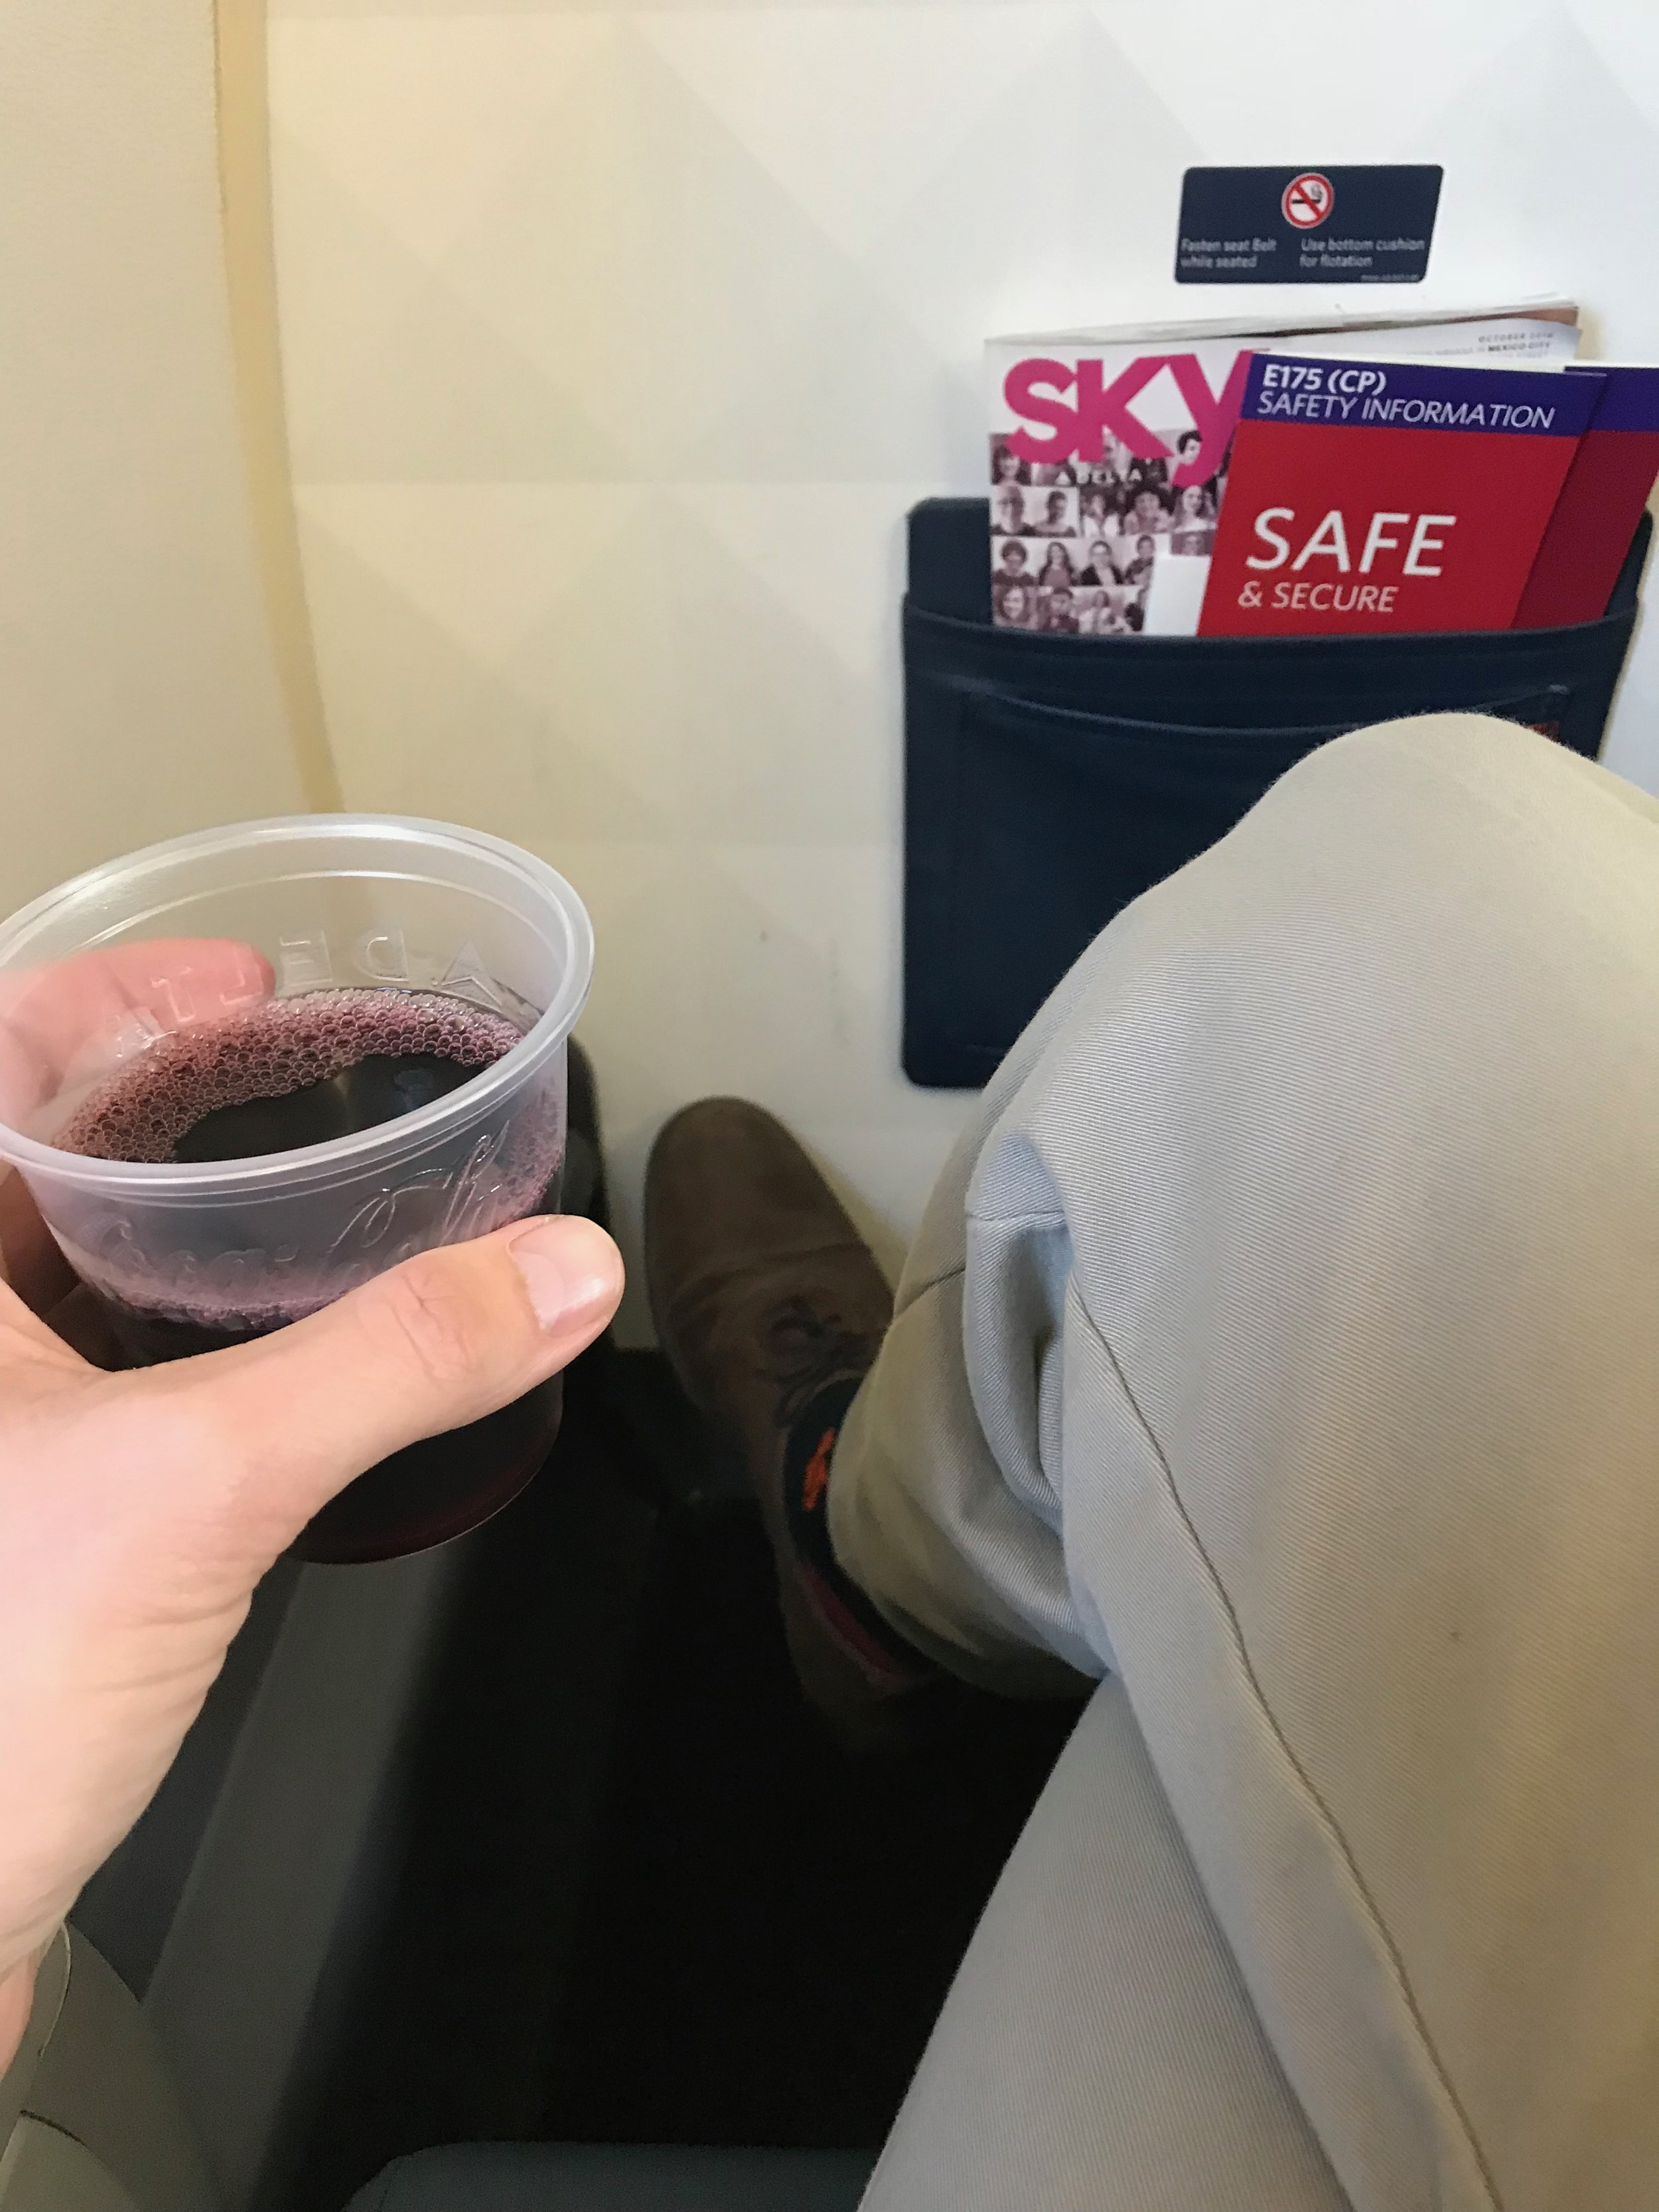 There is more knee space than the other rows, but there is not as much room to stretch your legs. There is also no under seat stowage.